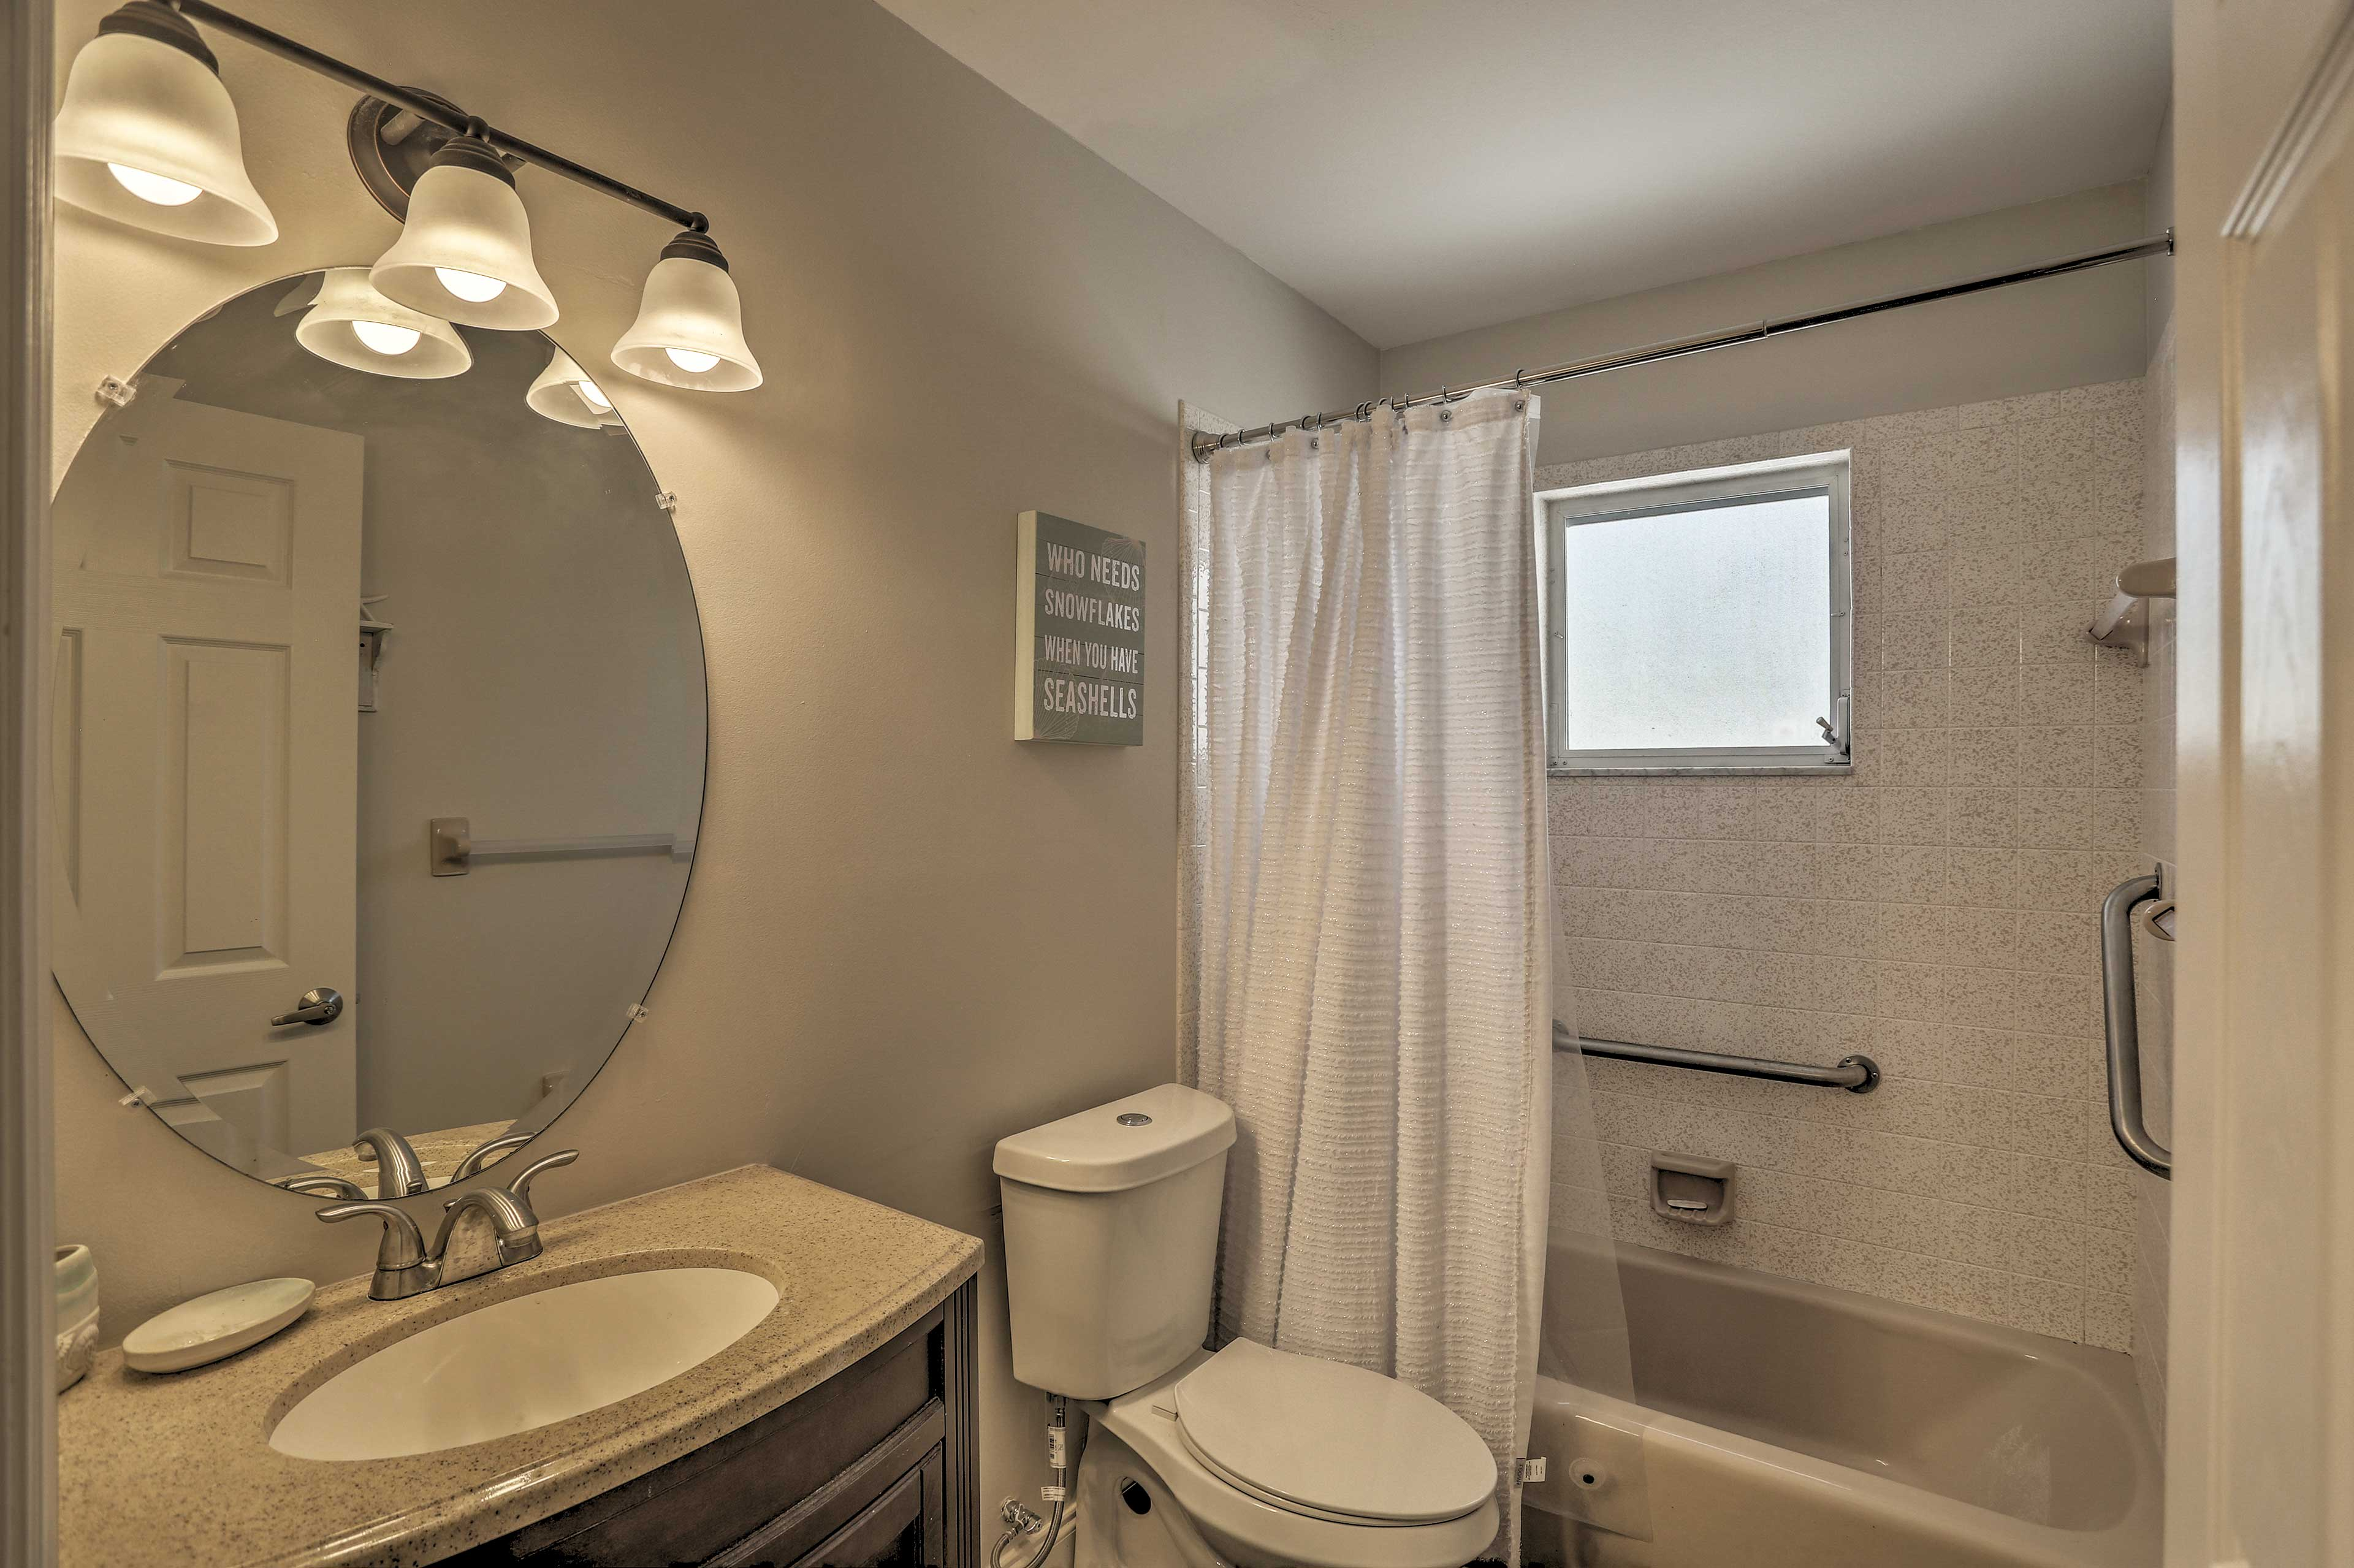 Wash up in this first bathroom, which features grab rails in the shower.